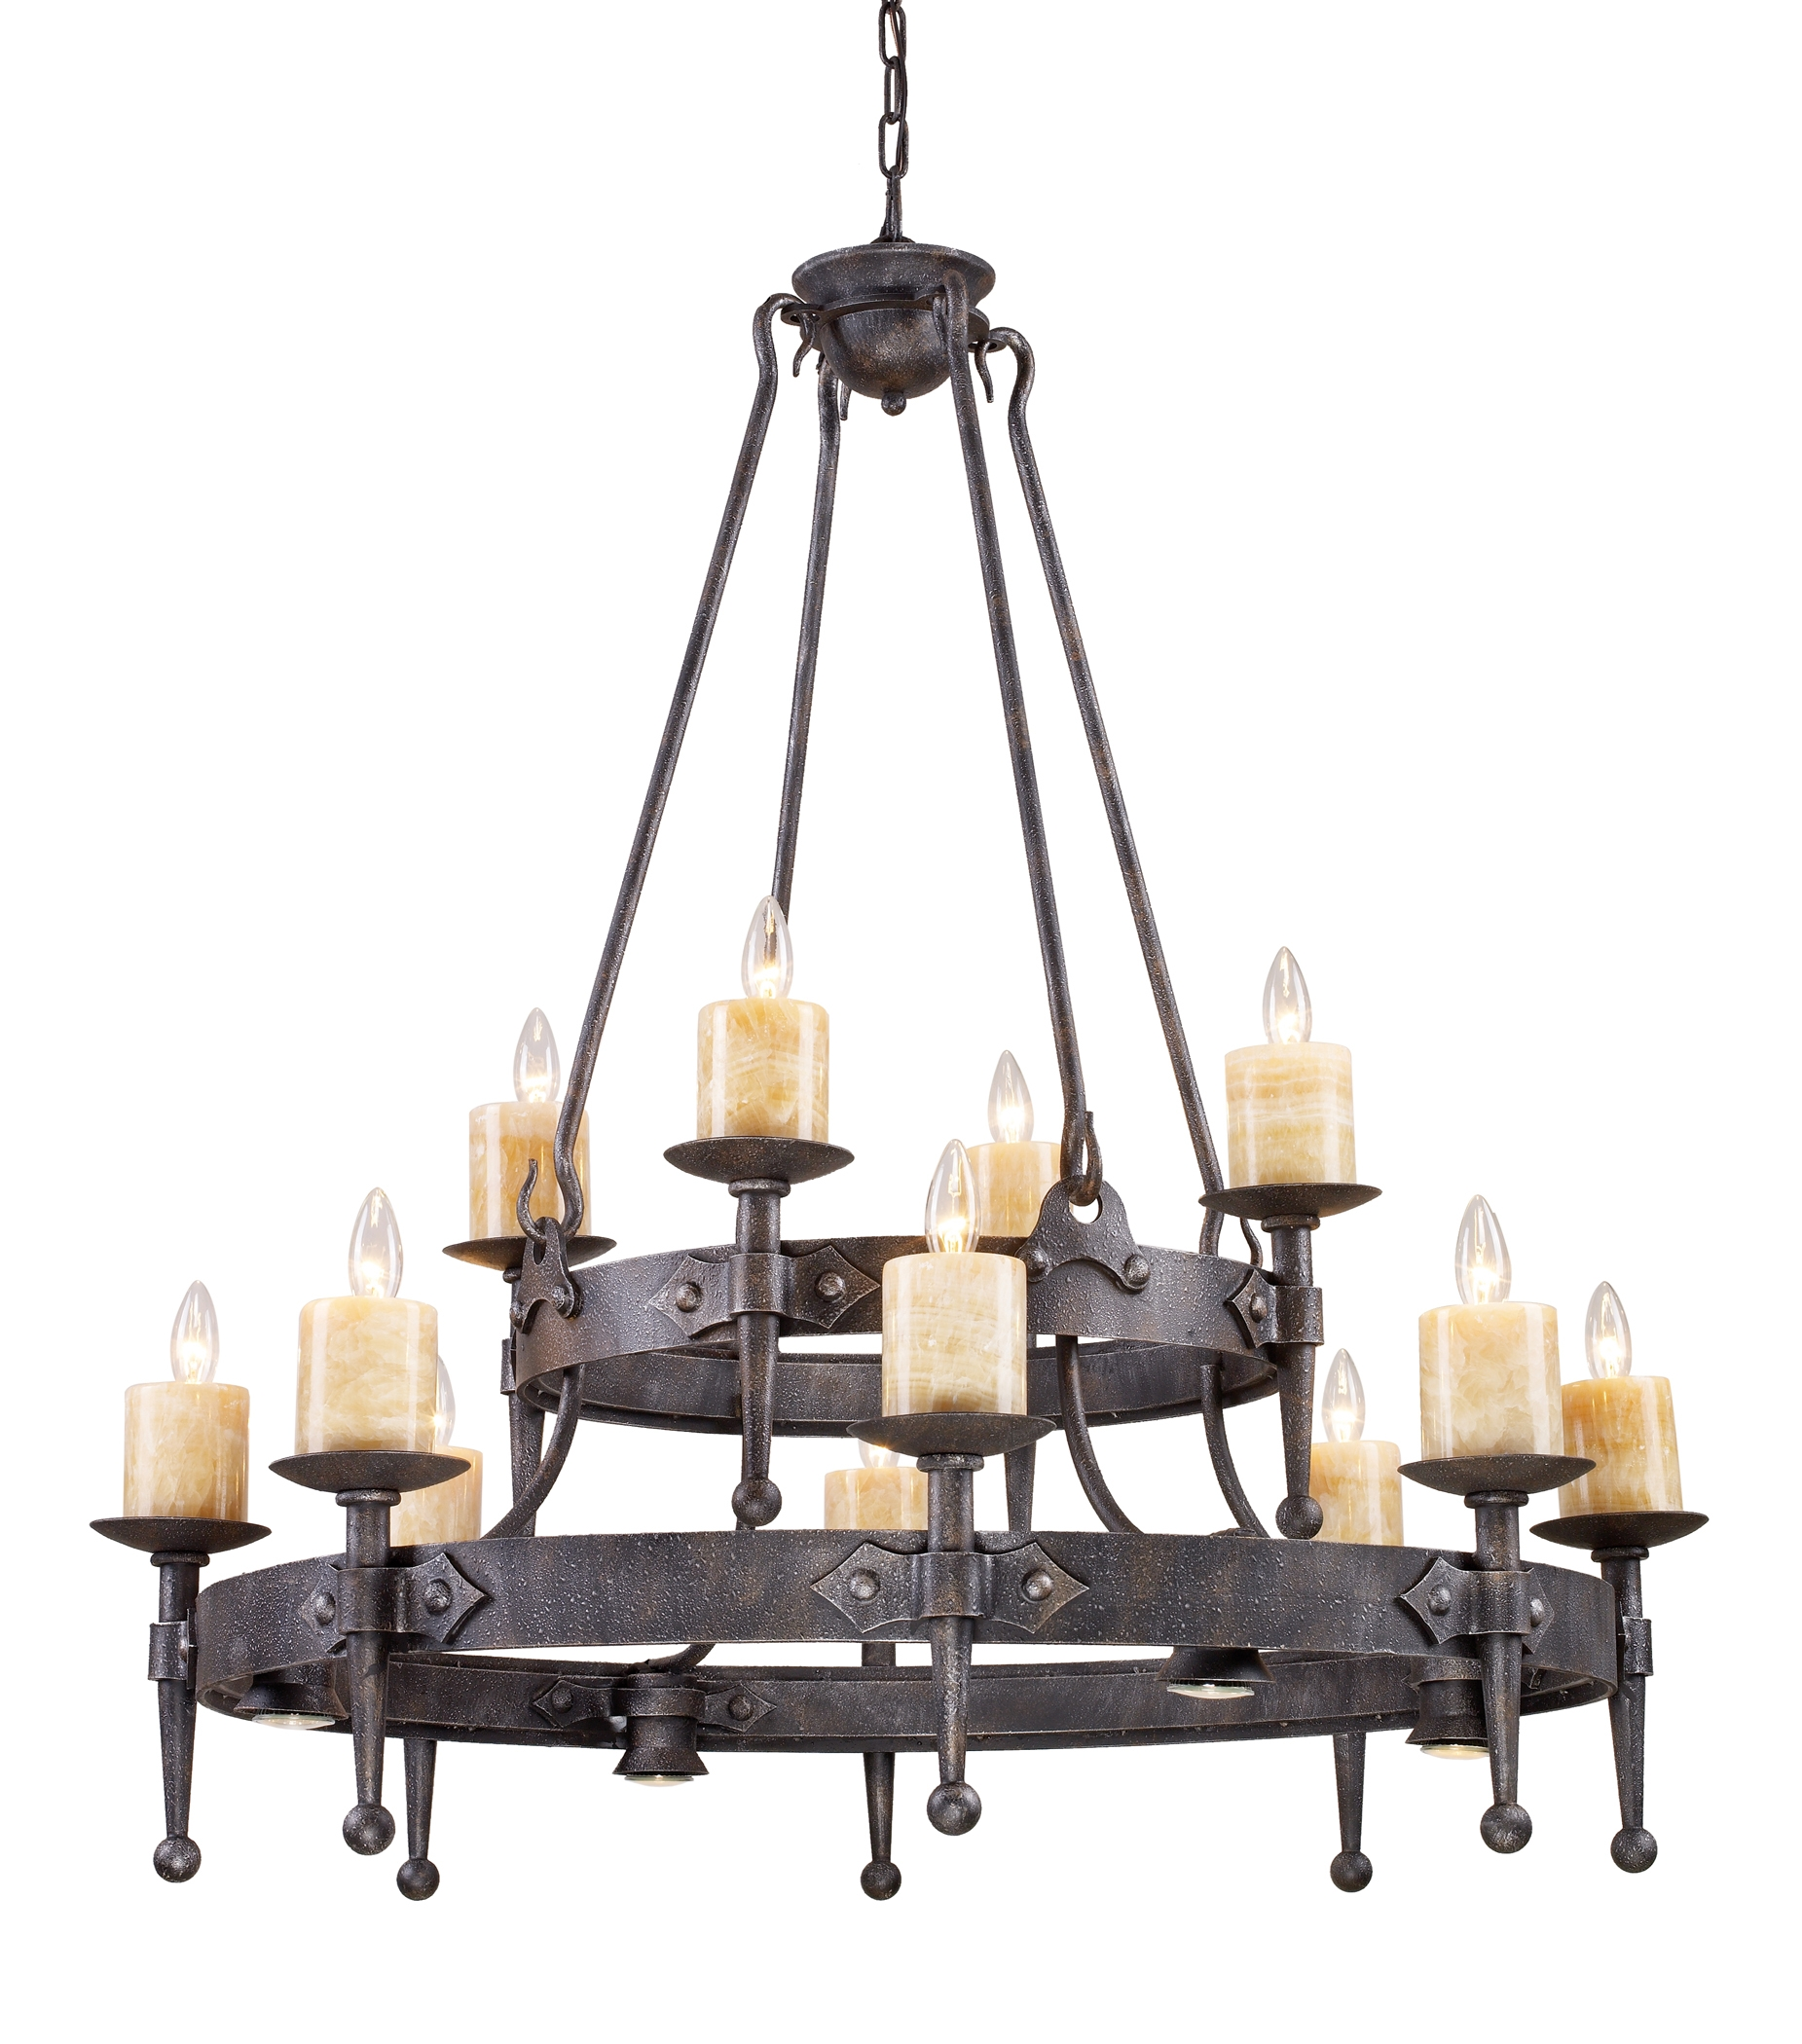 Candle Chandelier Perfect On Home Decoration Ideas With Candle Pertaining To Candle Chandelier (#2 of 12)